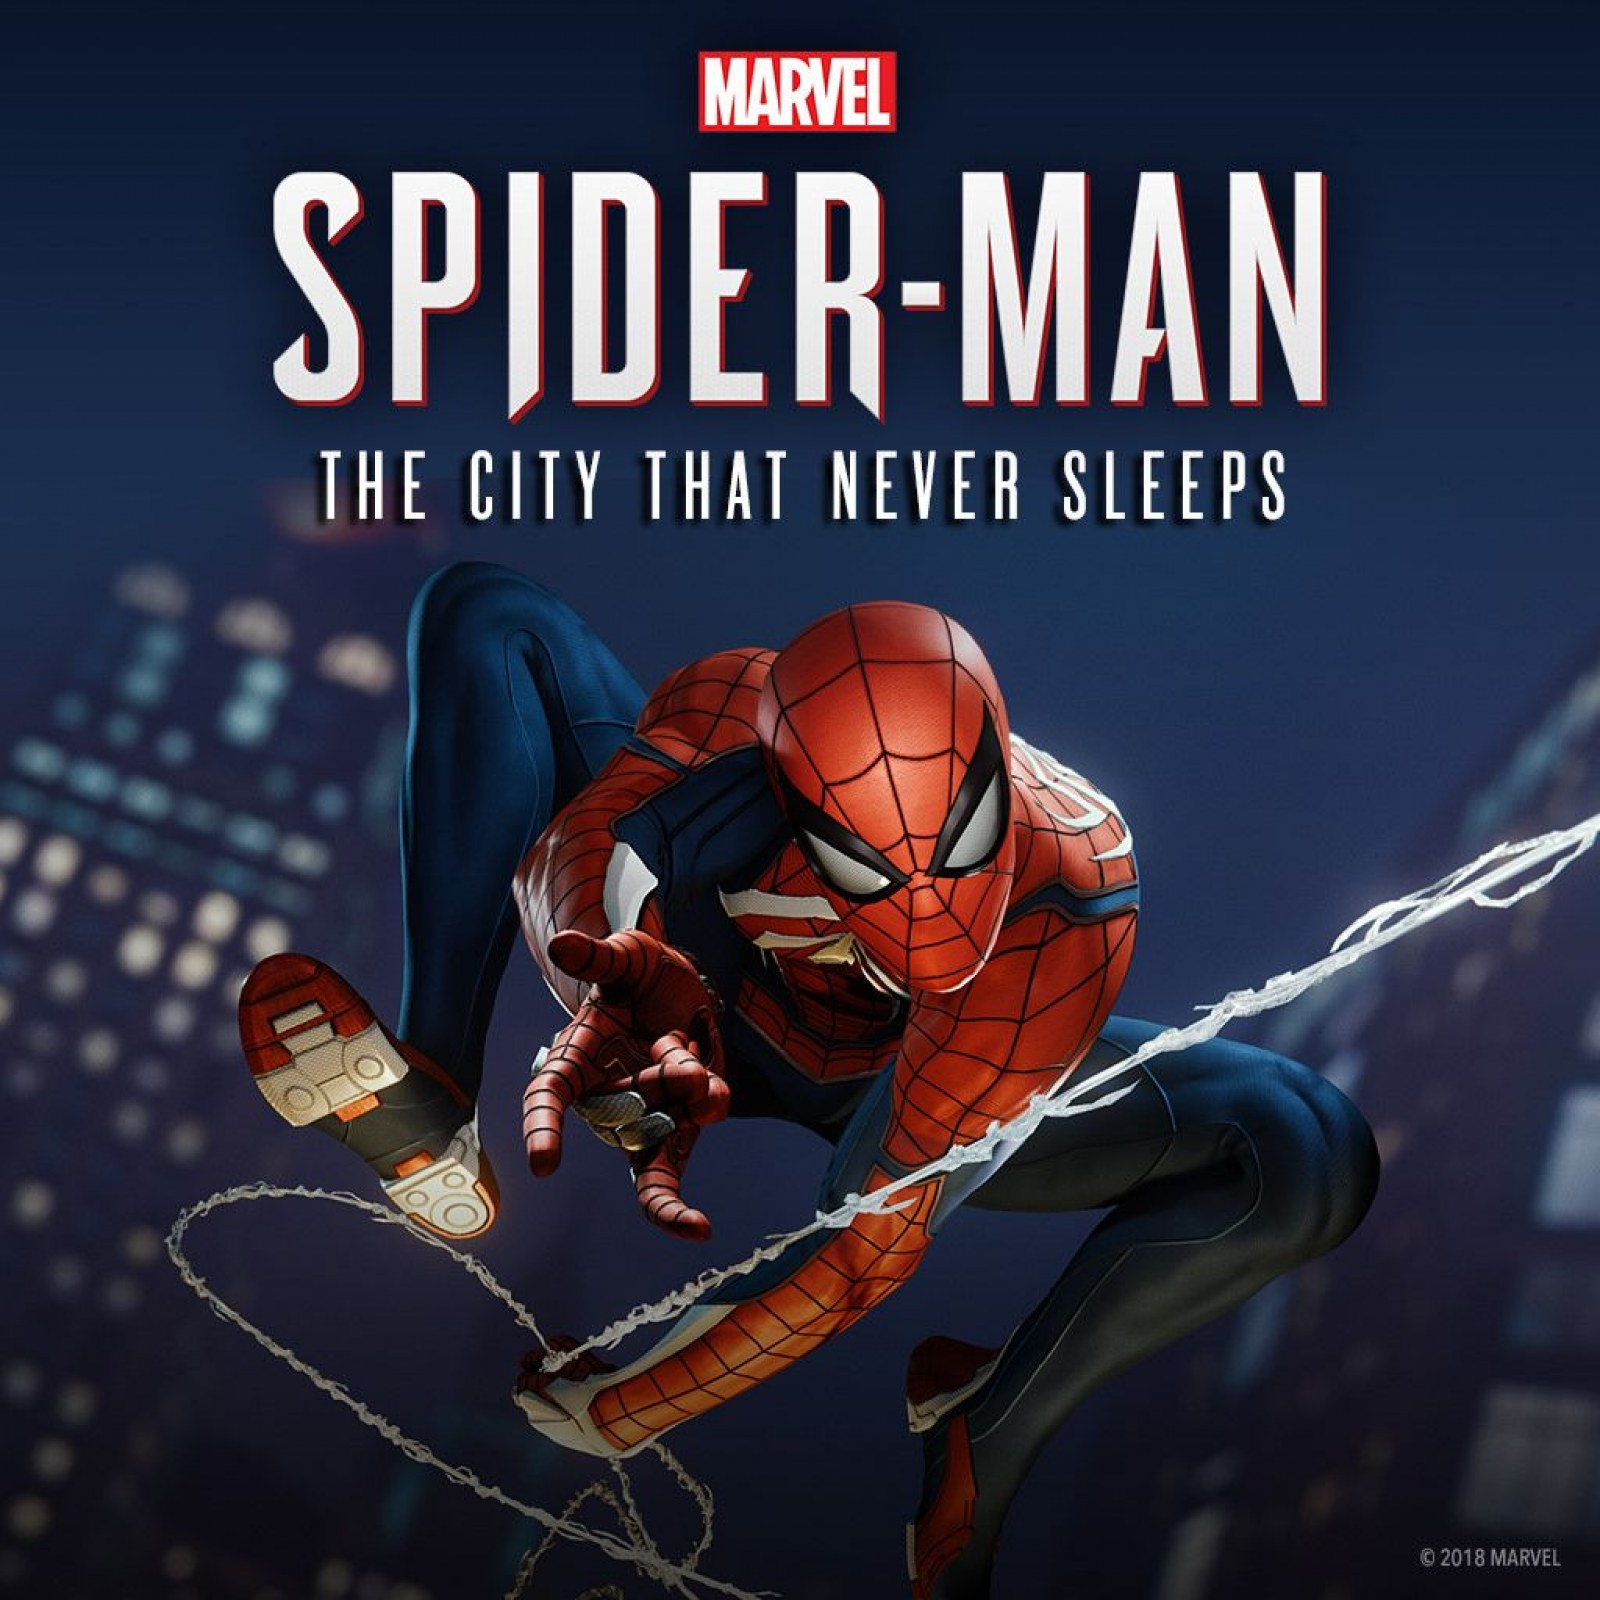 Marvel's Spider-Man' The Heist: How to Access DLC